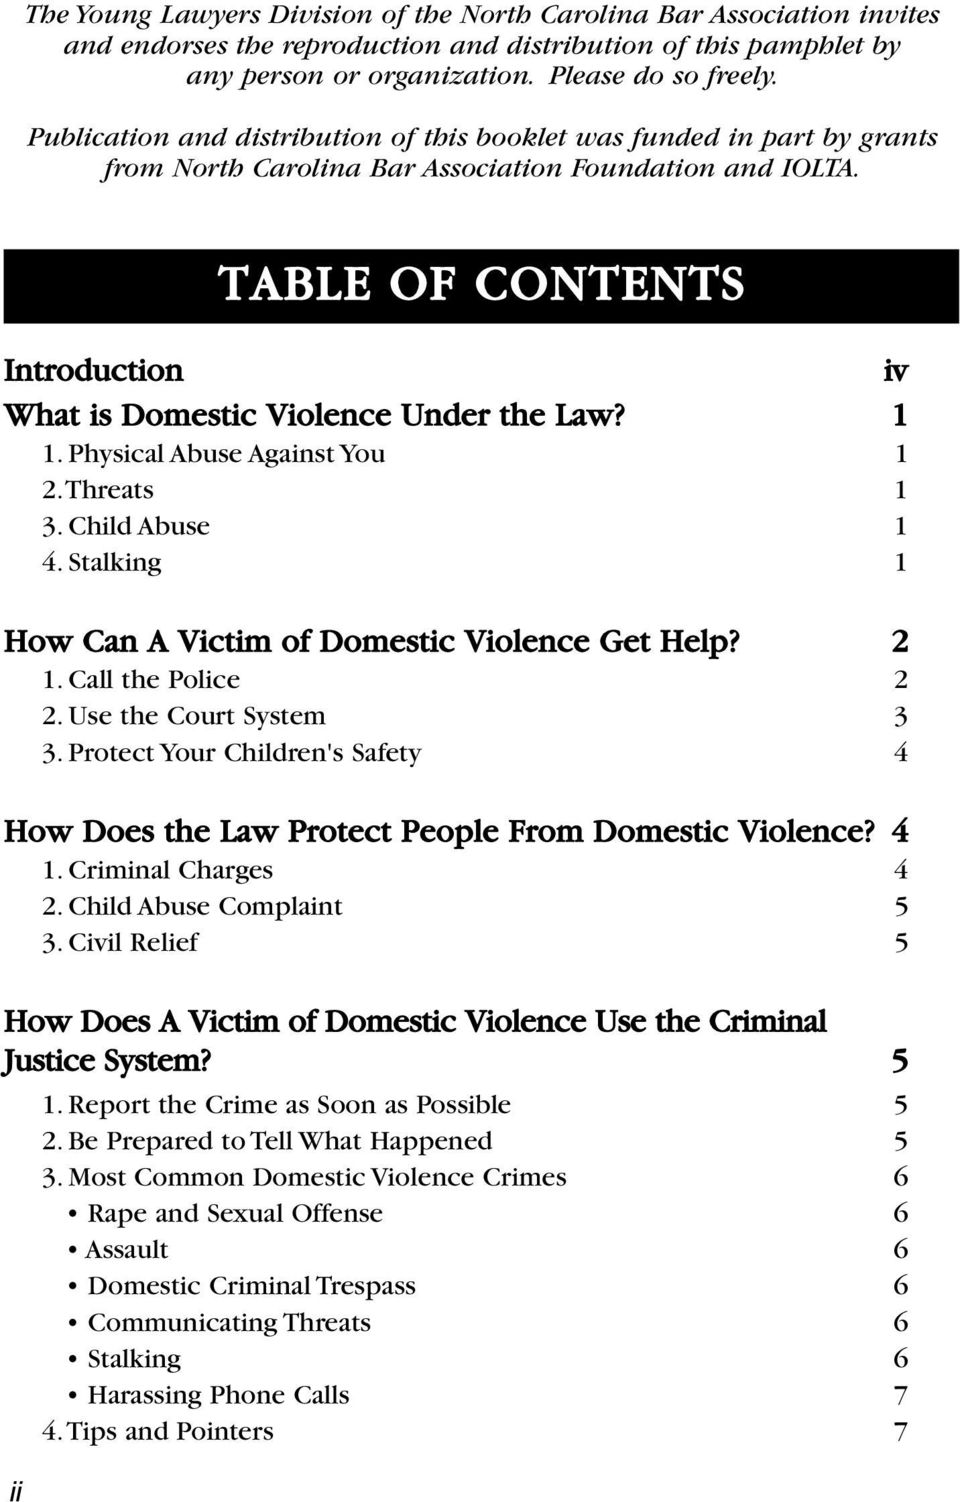 TABLE OF CONTENTS Introduction iv What is Domestic Violence Under the Law? 1 1. Physical Abuse Against You 1 2.Threats 1 3. Child Abuse 1 4. Stalking 1 How Can A Victim of Domestic Violence Get Help?